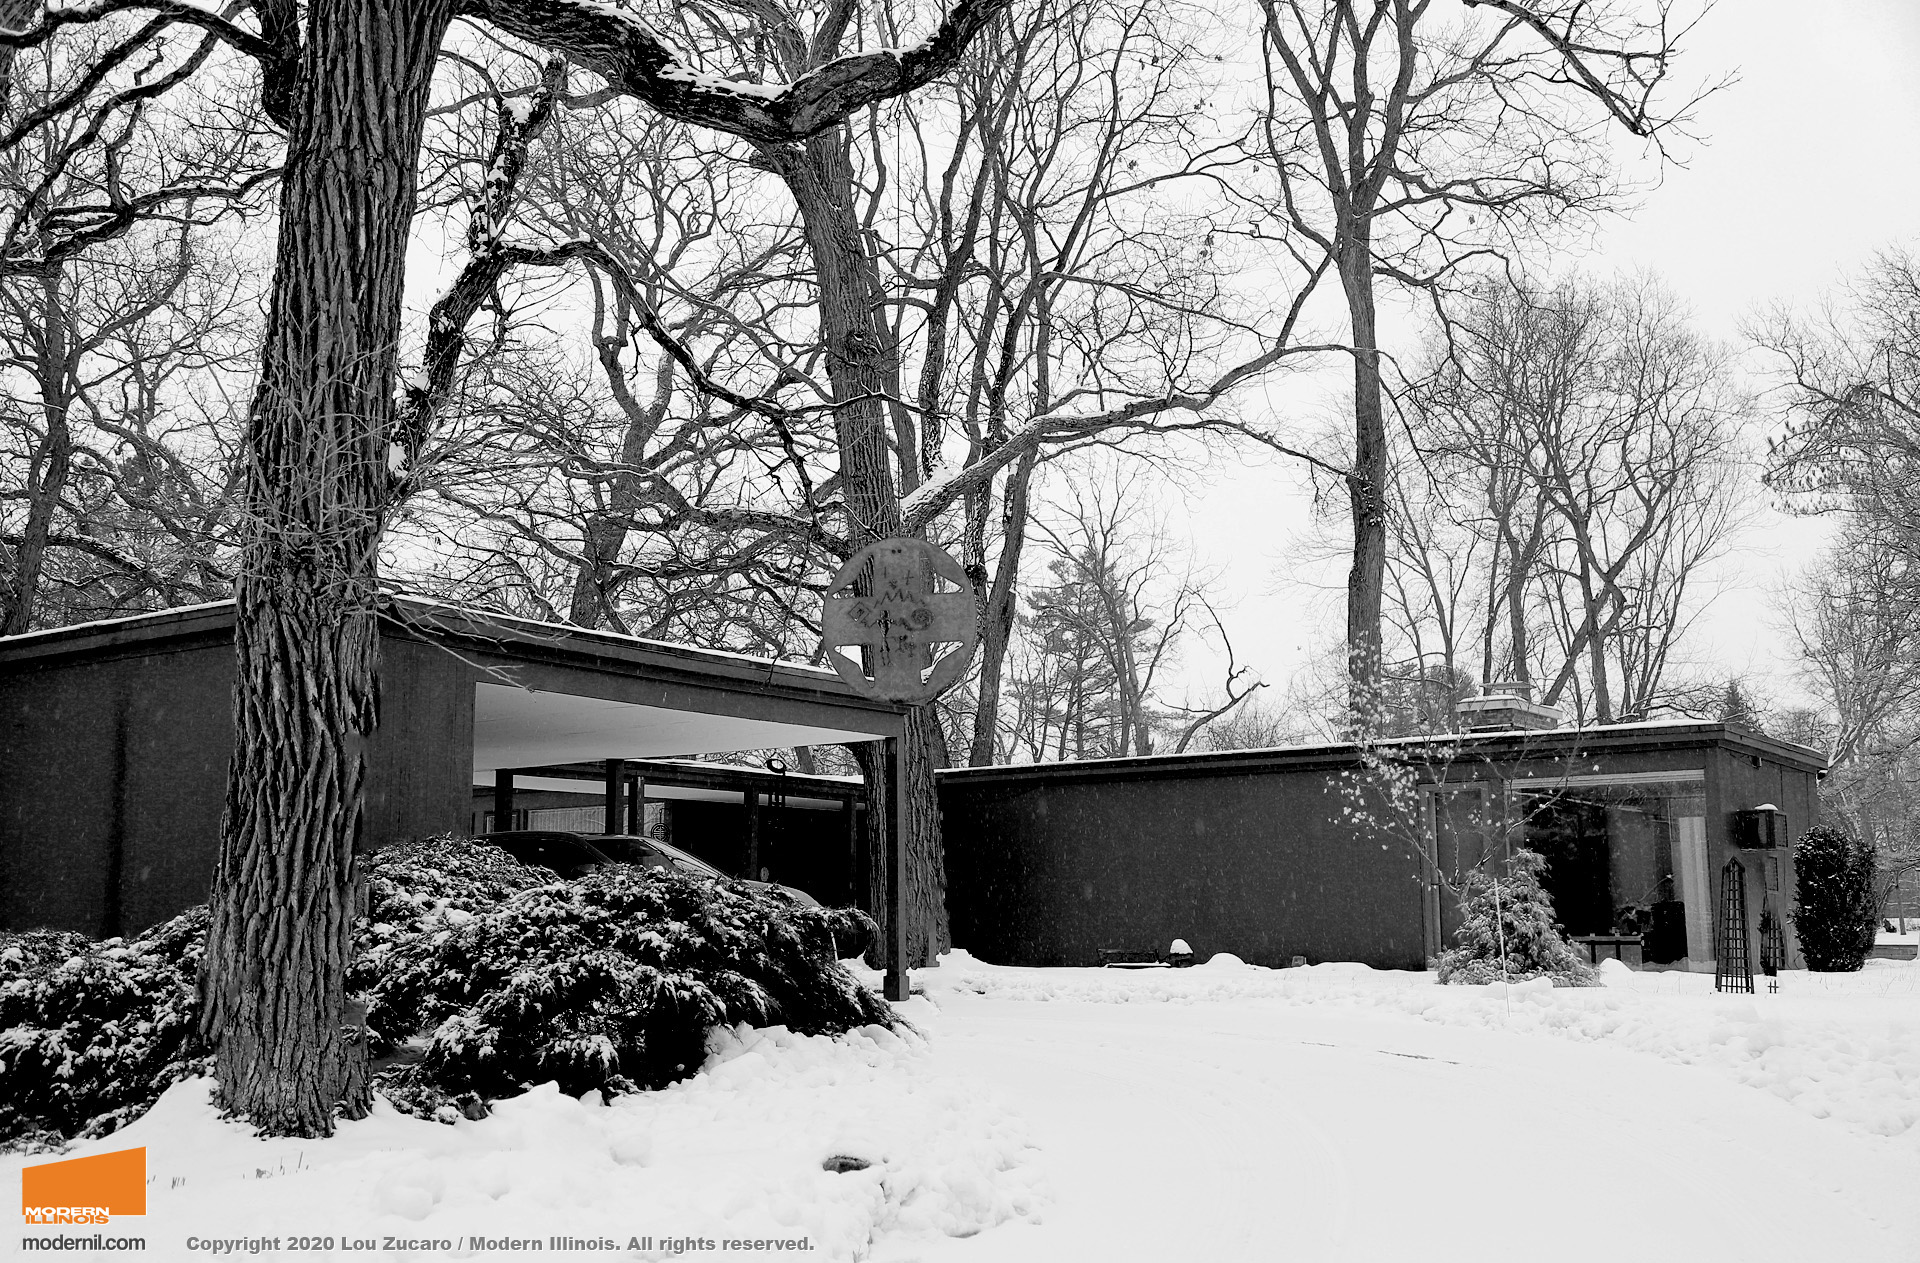 Architect: Dennis Blair. @ Copyright 2020 Lou Zucaro / Modern Illinois. All rights reserved. modernil.com